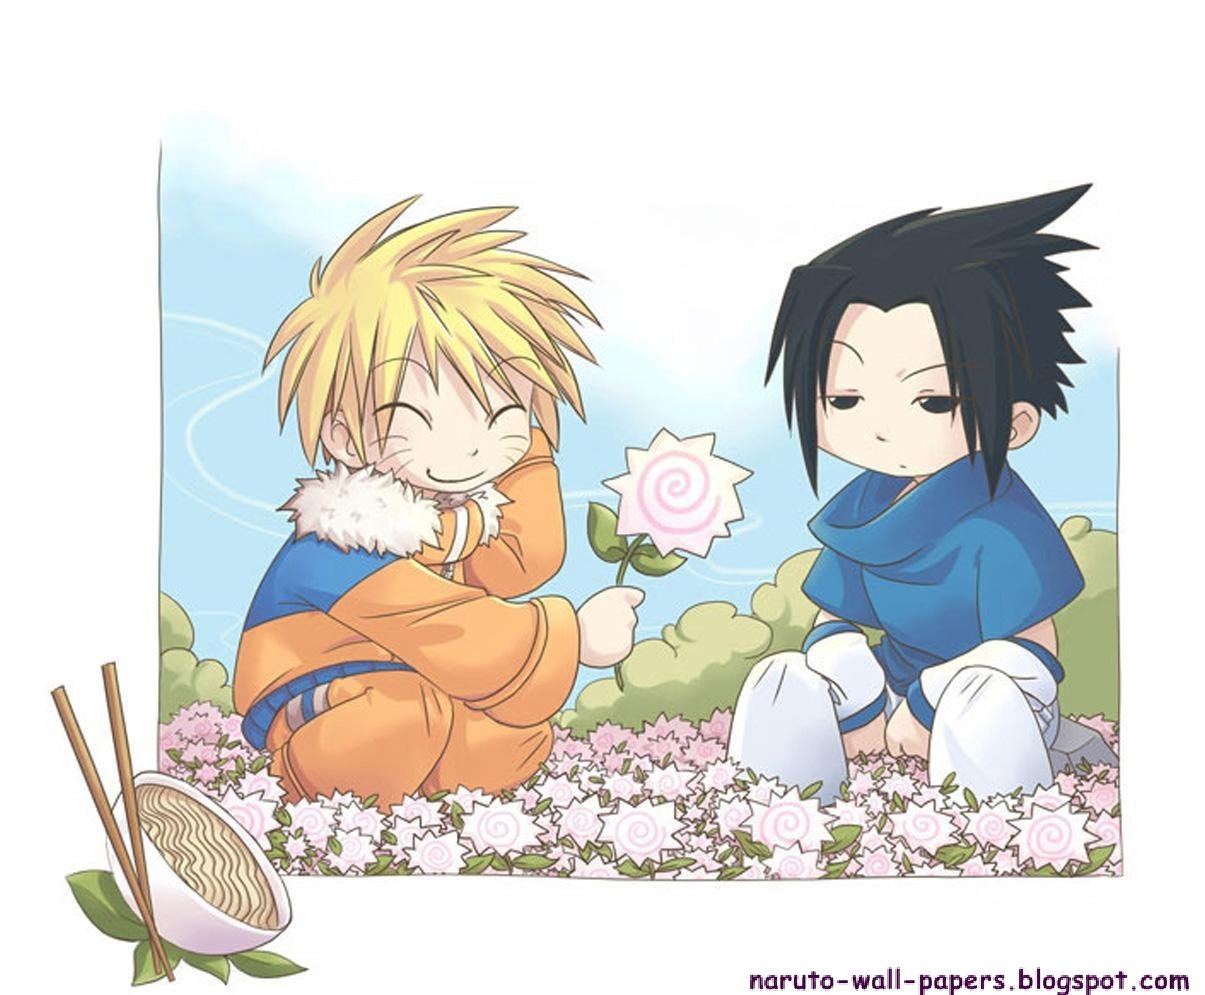 Naruto And Bleach Anime Wallpapers Cute Team Kakashi Chibi Naruto Pix 1205x995